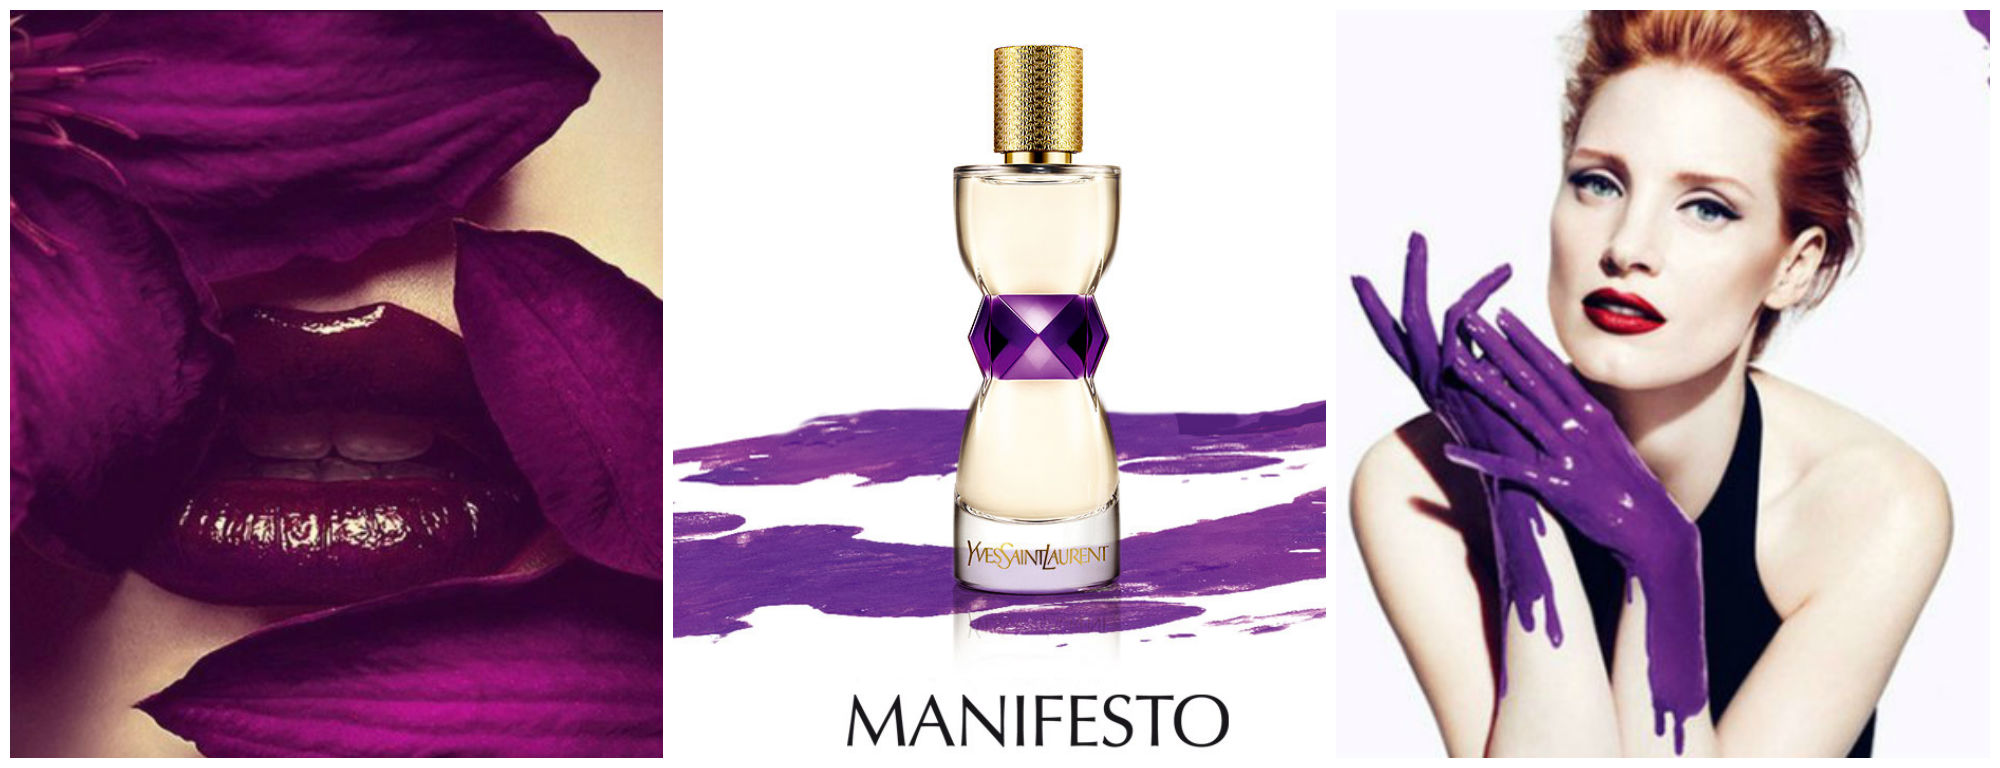 yves saint laurent manifesto perfume review. Black Bedroom Furniture Sets. Home Design Ideas